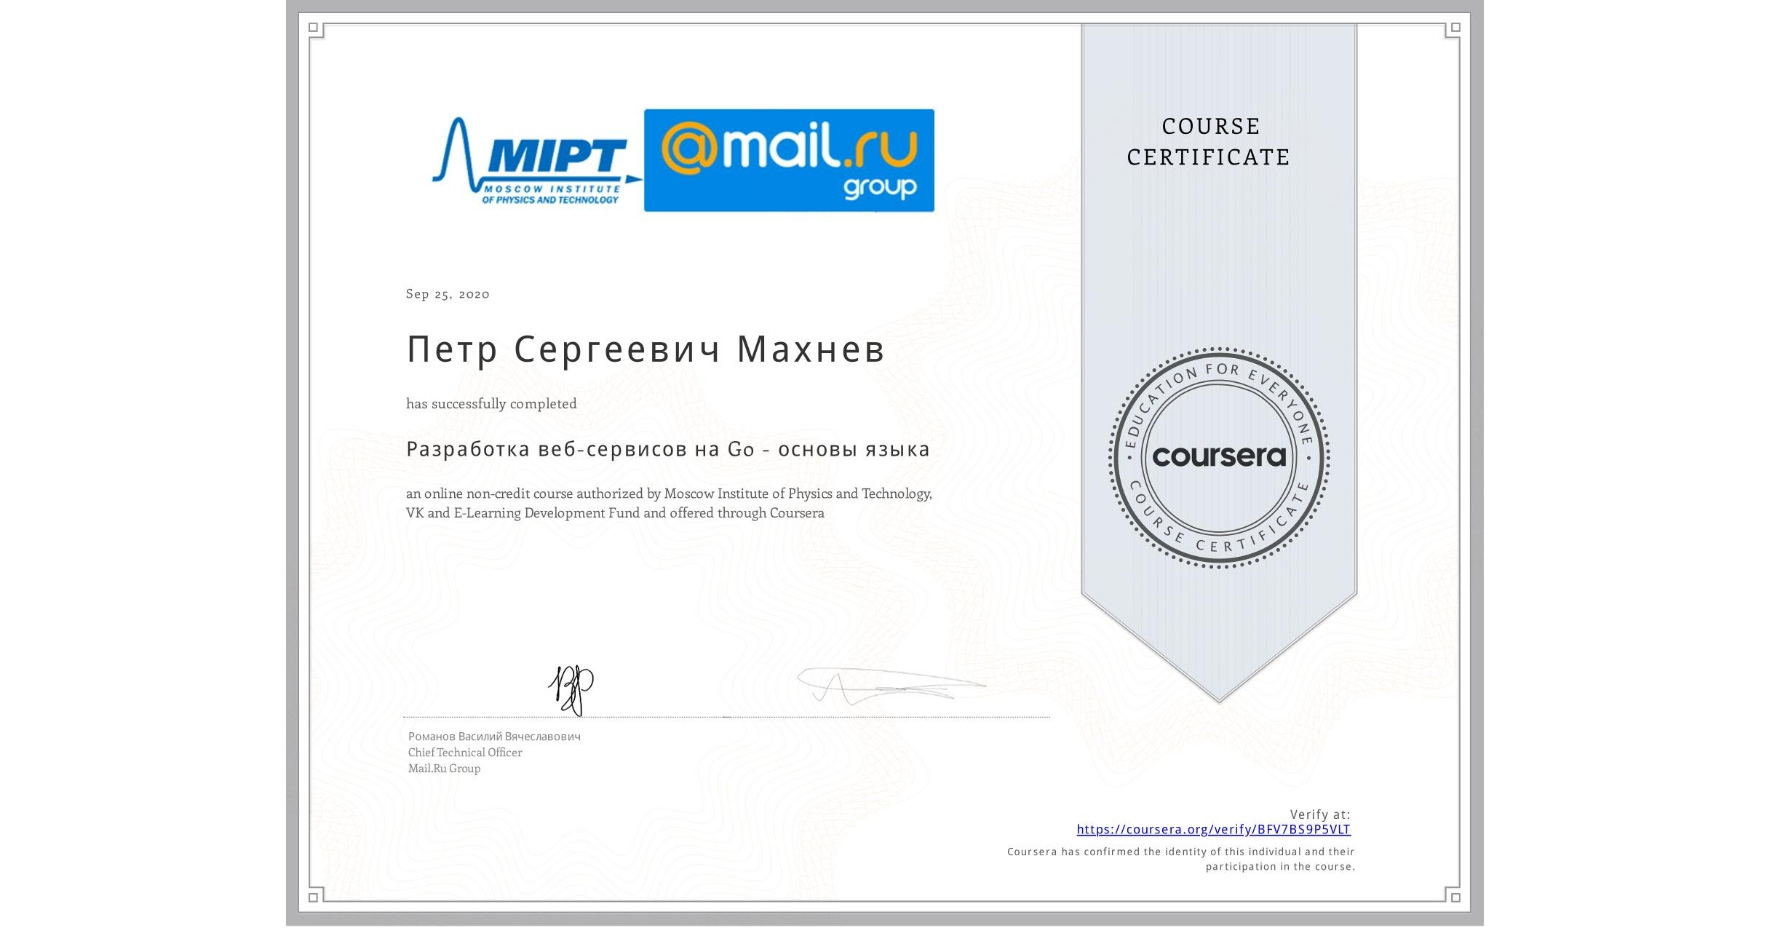 View certificate for Петр Сергеевич Махнев, Разработка веб-сервисов на Go - основы языка, an online non-credit course authorized by Moscow Institute of Physics and Technology, Mail.Ru Group & ФРОО and offered through Coursera